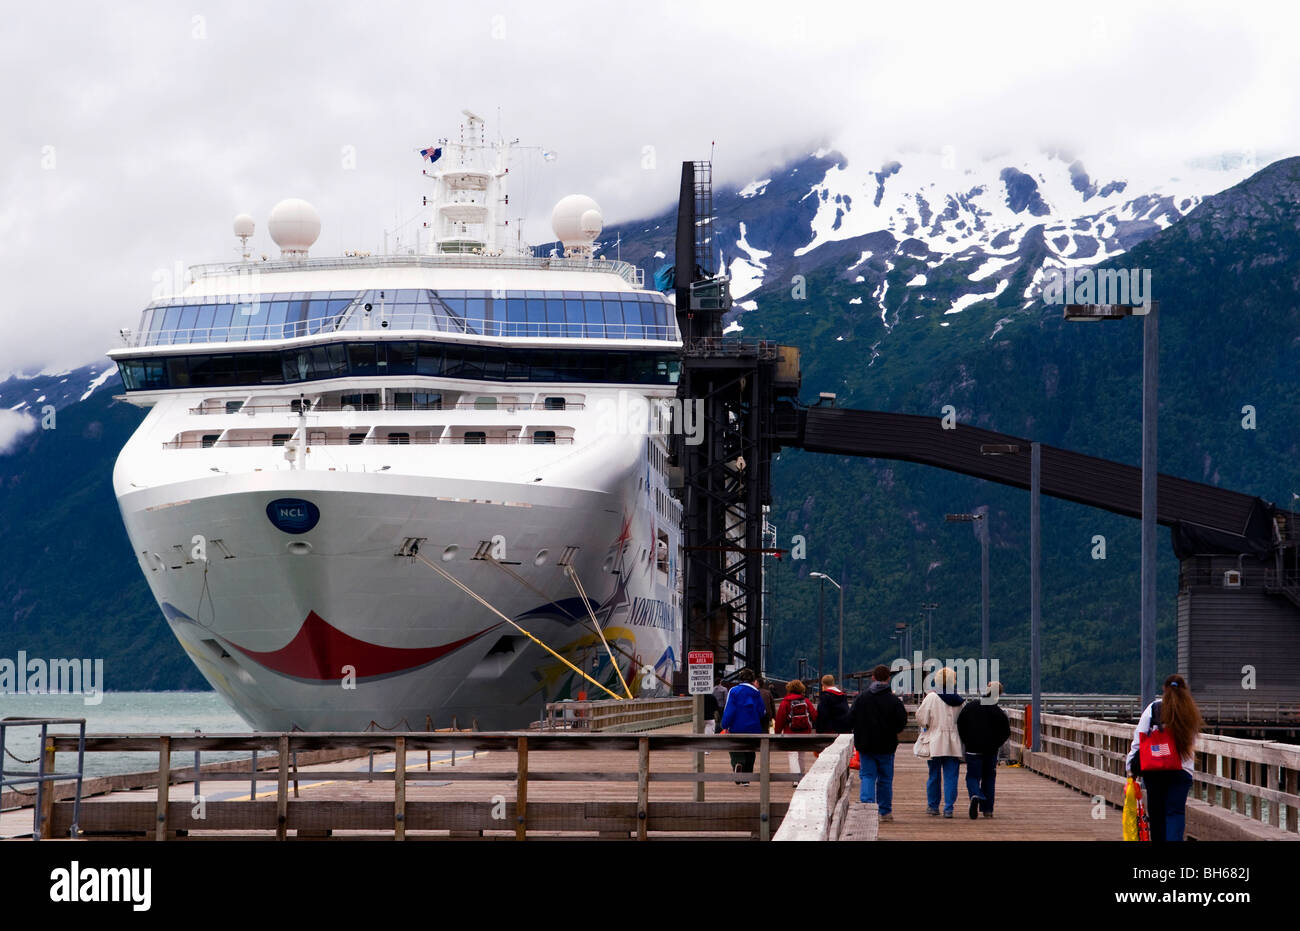 Passengers headed back to The Norwegian Star cruise ship after a day of shopping and sightseeing in Skagway Alaska. - Stock Image